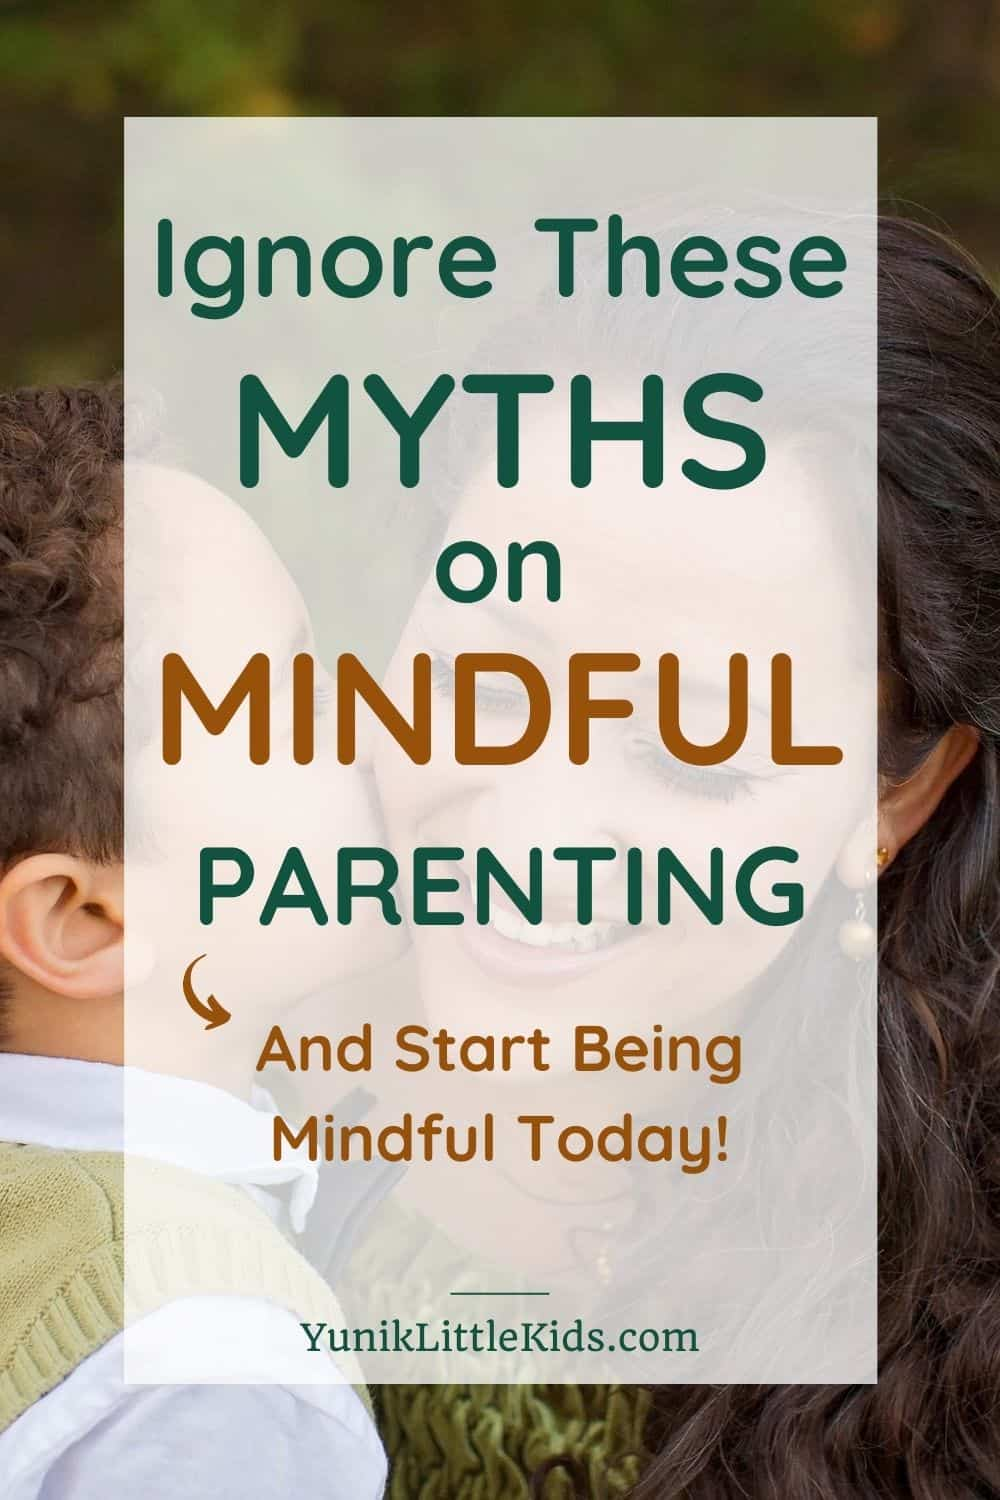 ignore these myths about mindful parenting